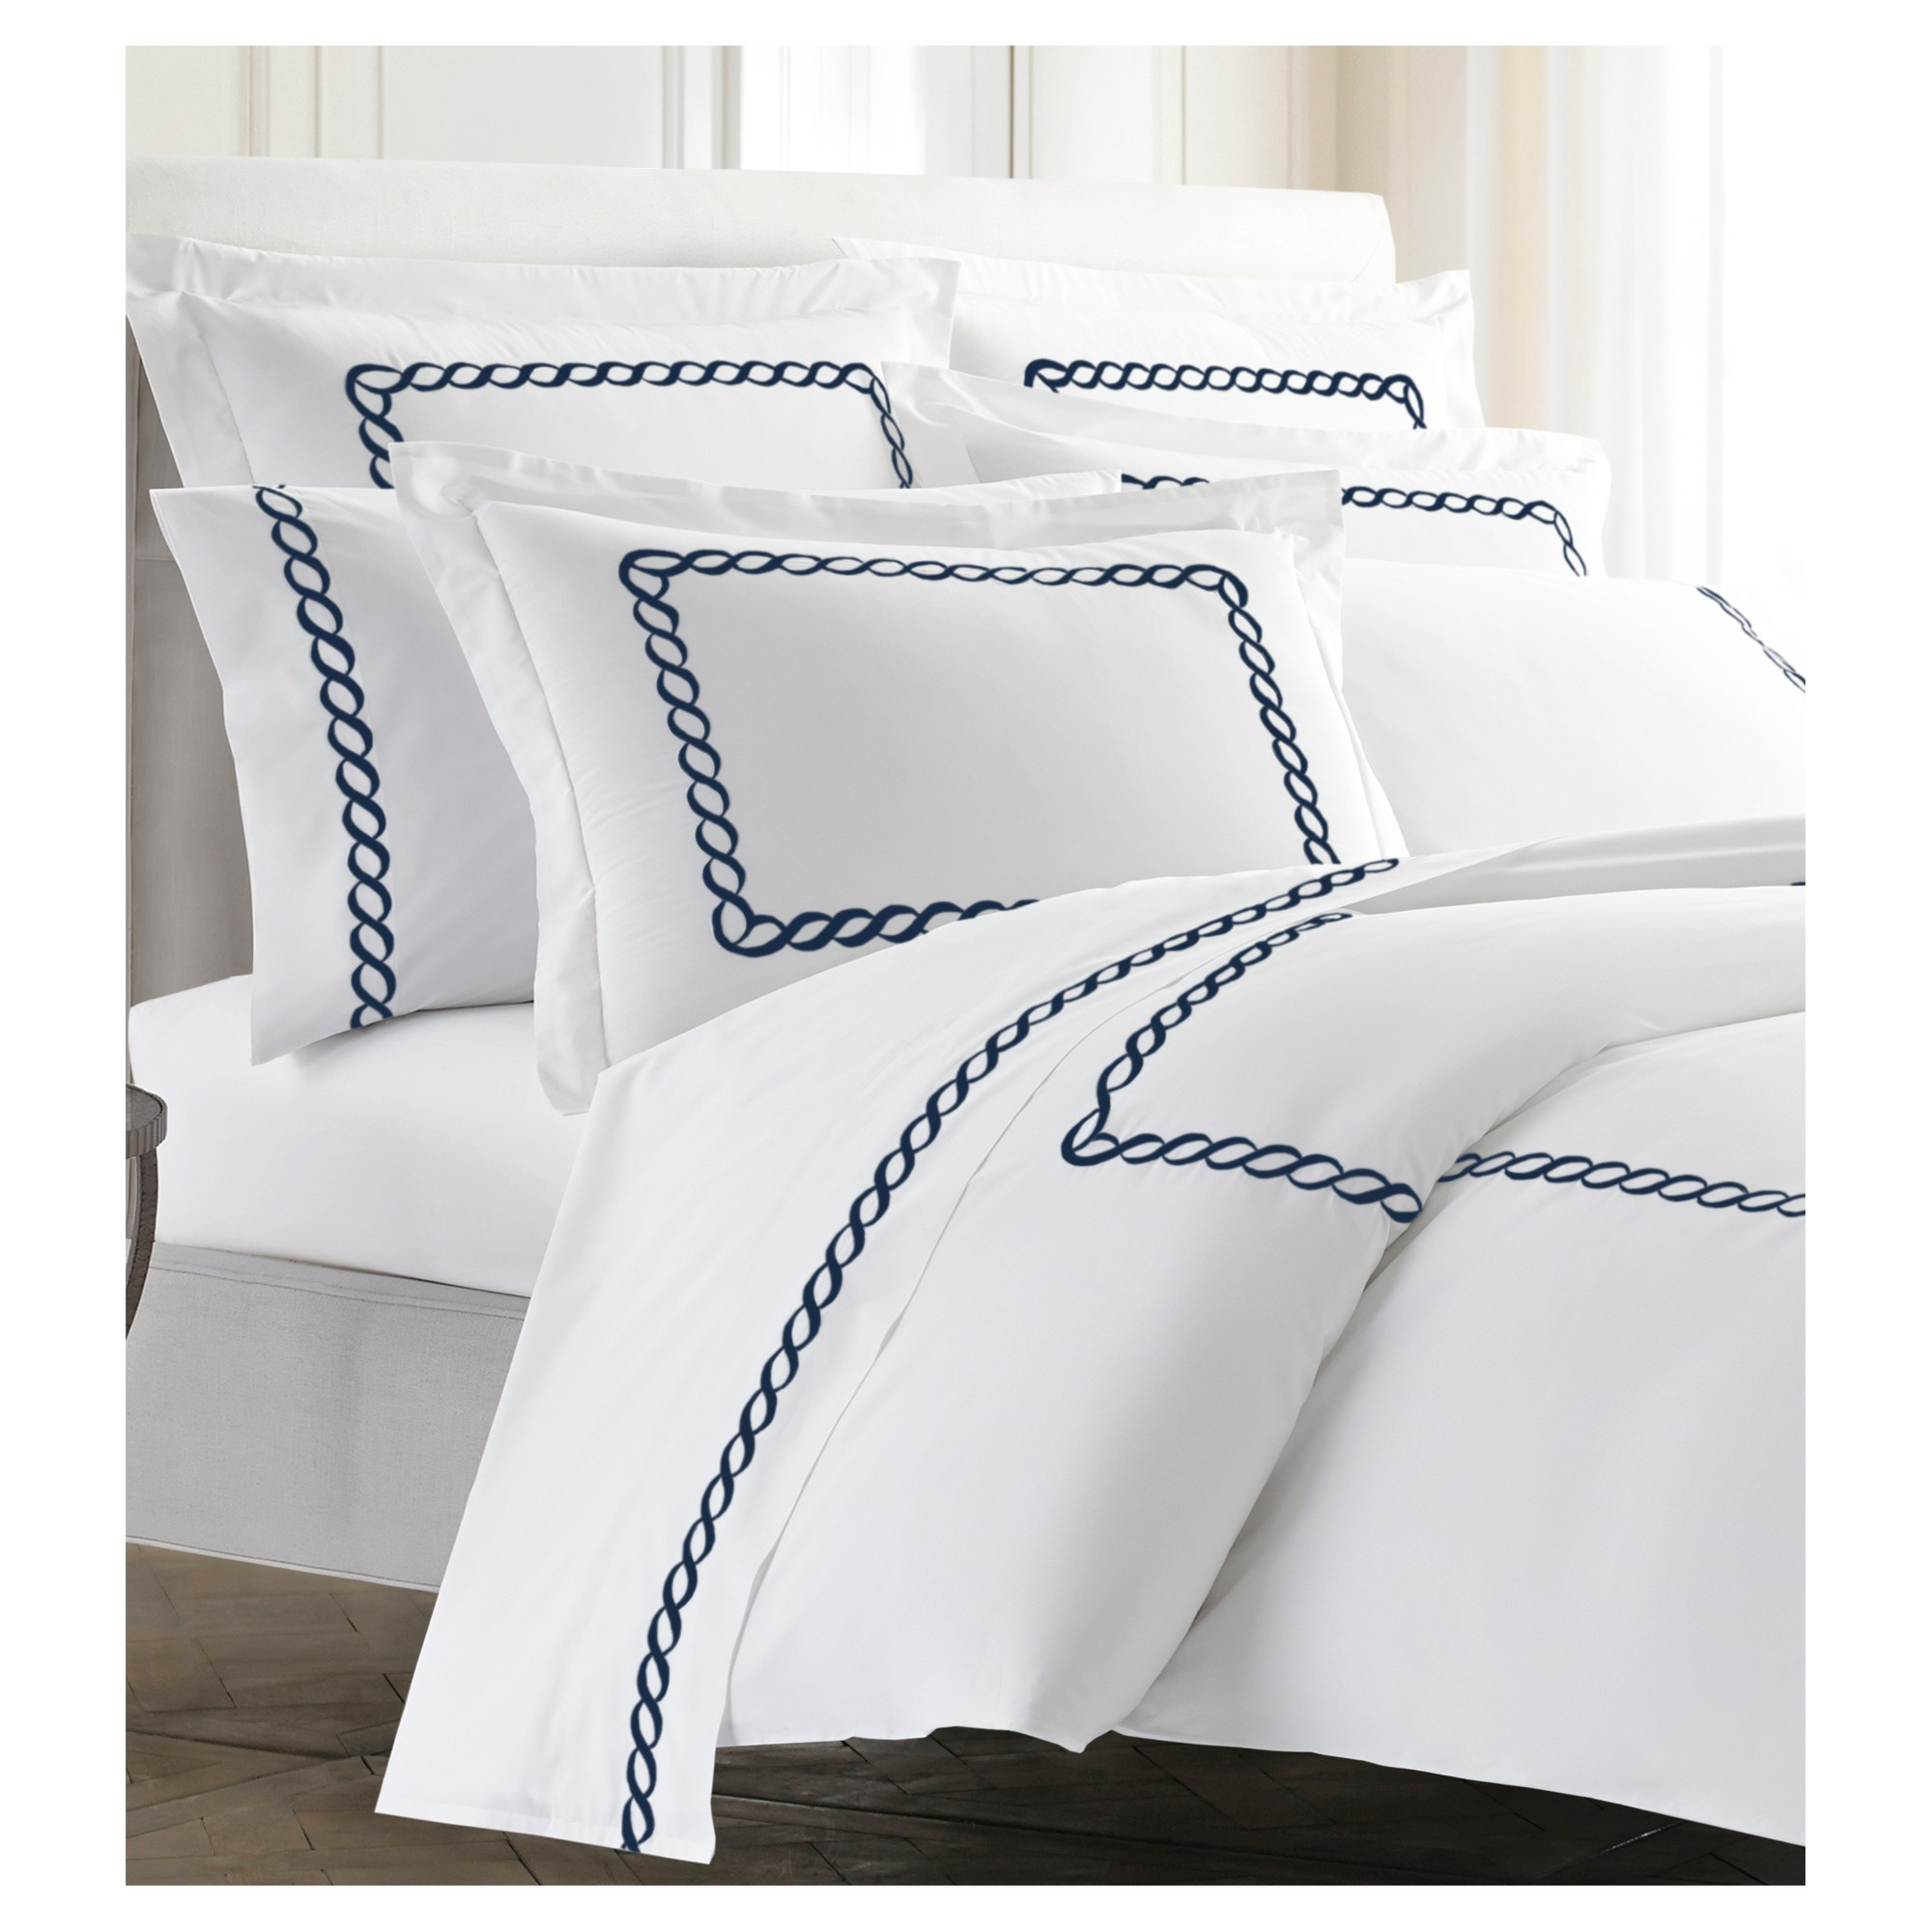 Pin By Wesley On Bedroom Duvet Cover Master Bedroom Blue And White Bedding King Duvet Cover